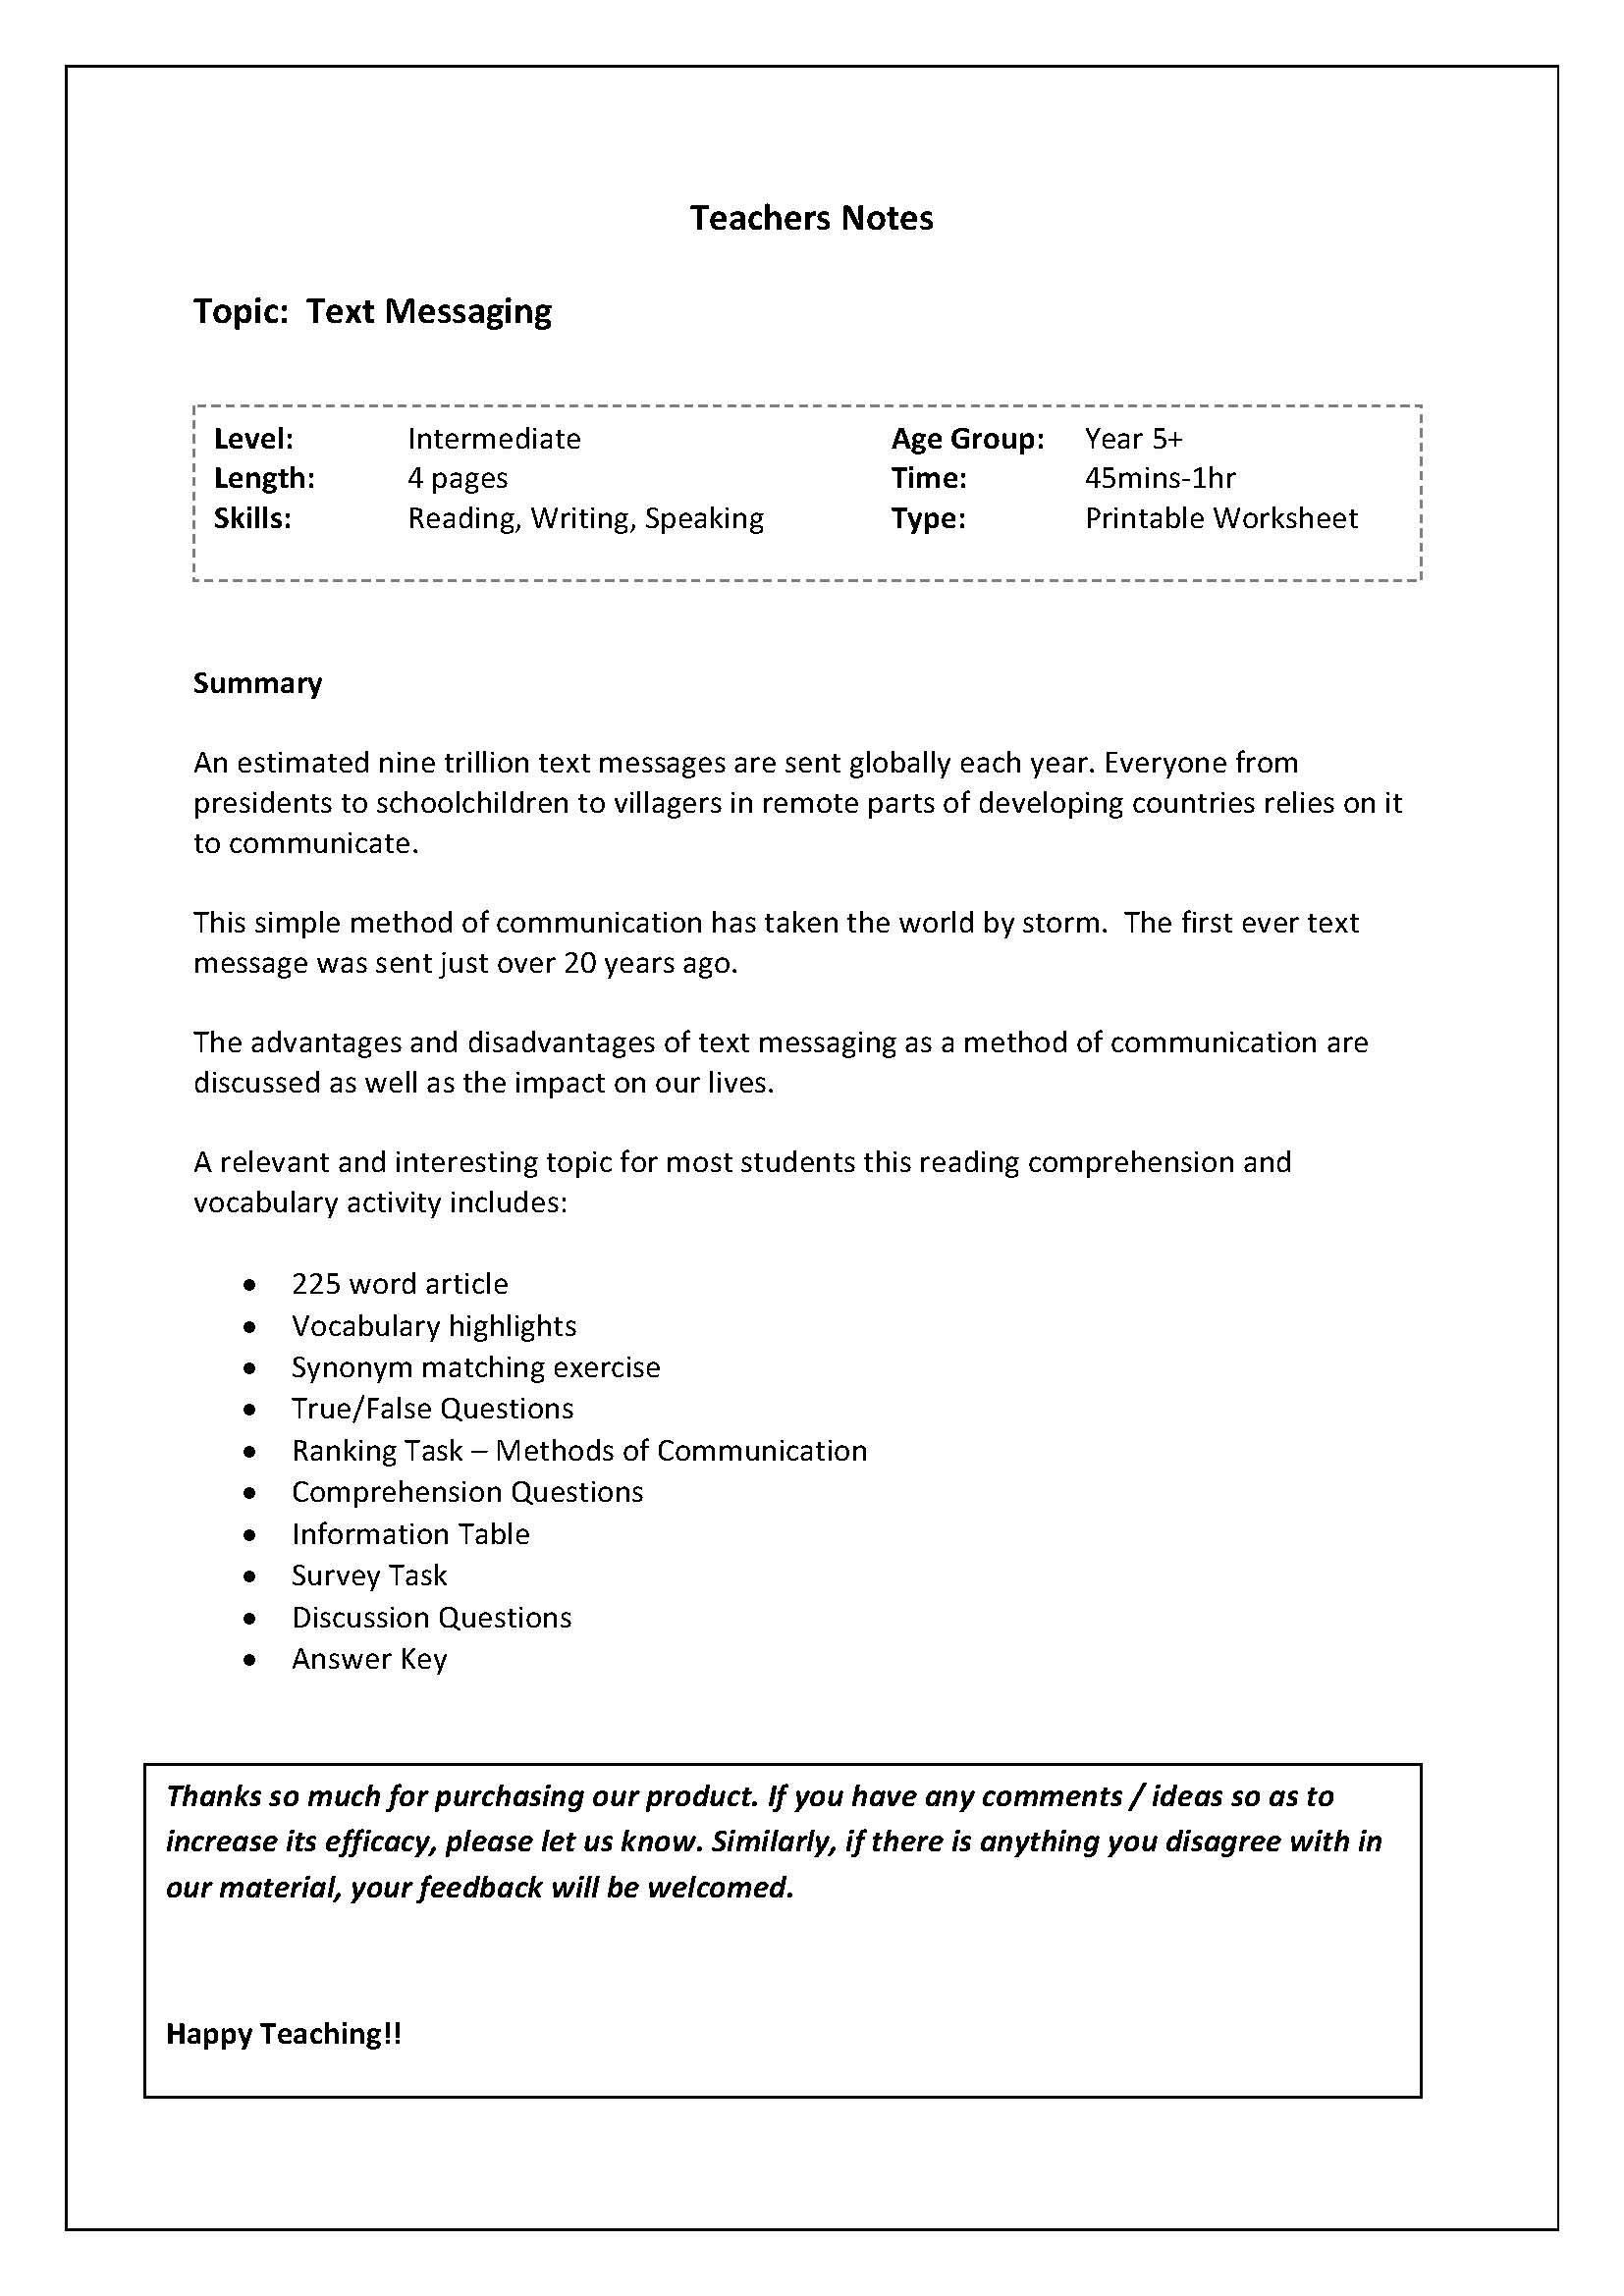 Worksheets Reading Comprehension Vocabulary Worksheets reading and vocab worksheet brief history of text messagingenglish a messaging a3 00 this comprehension vocabulary worksheet